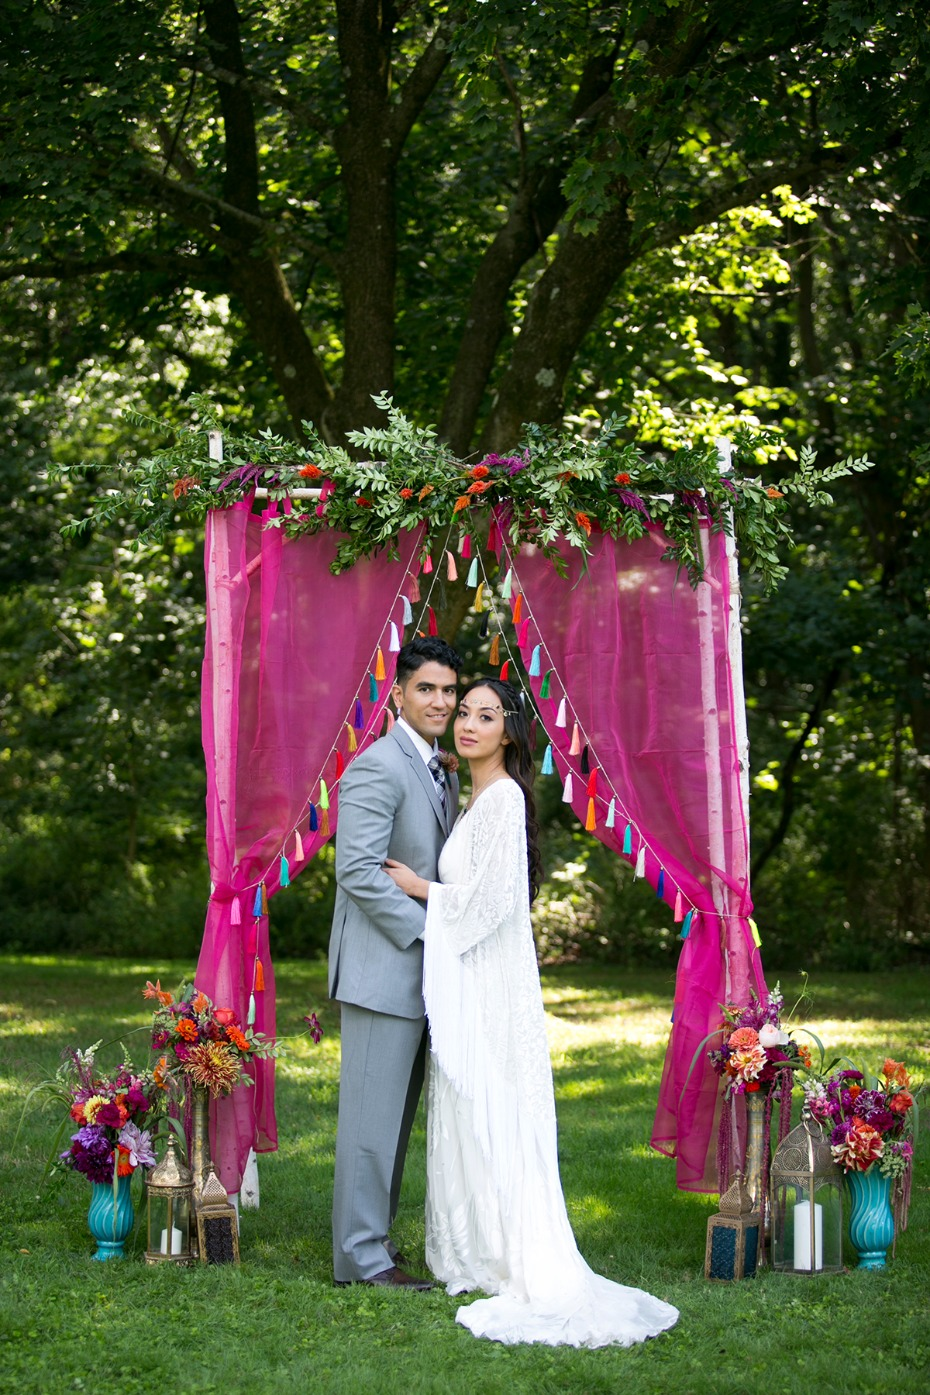 whimsical wedding style with bright colors